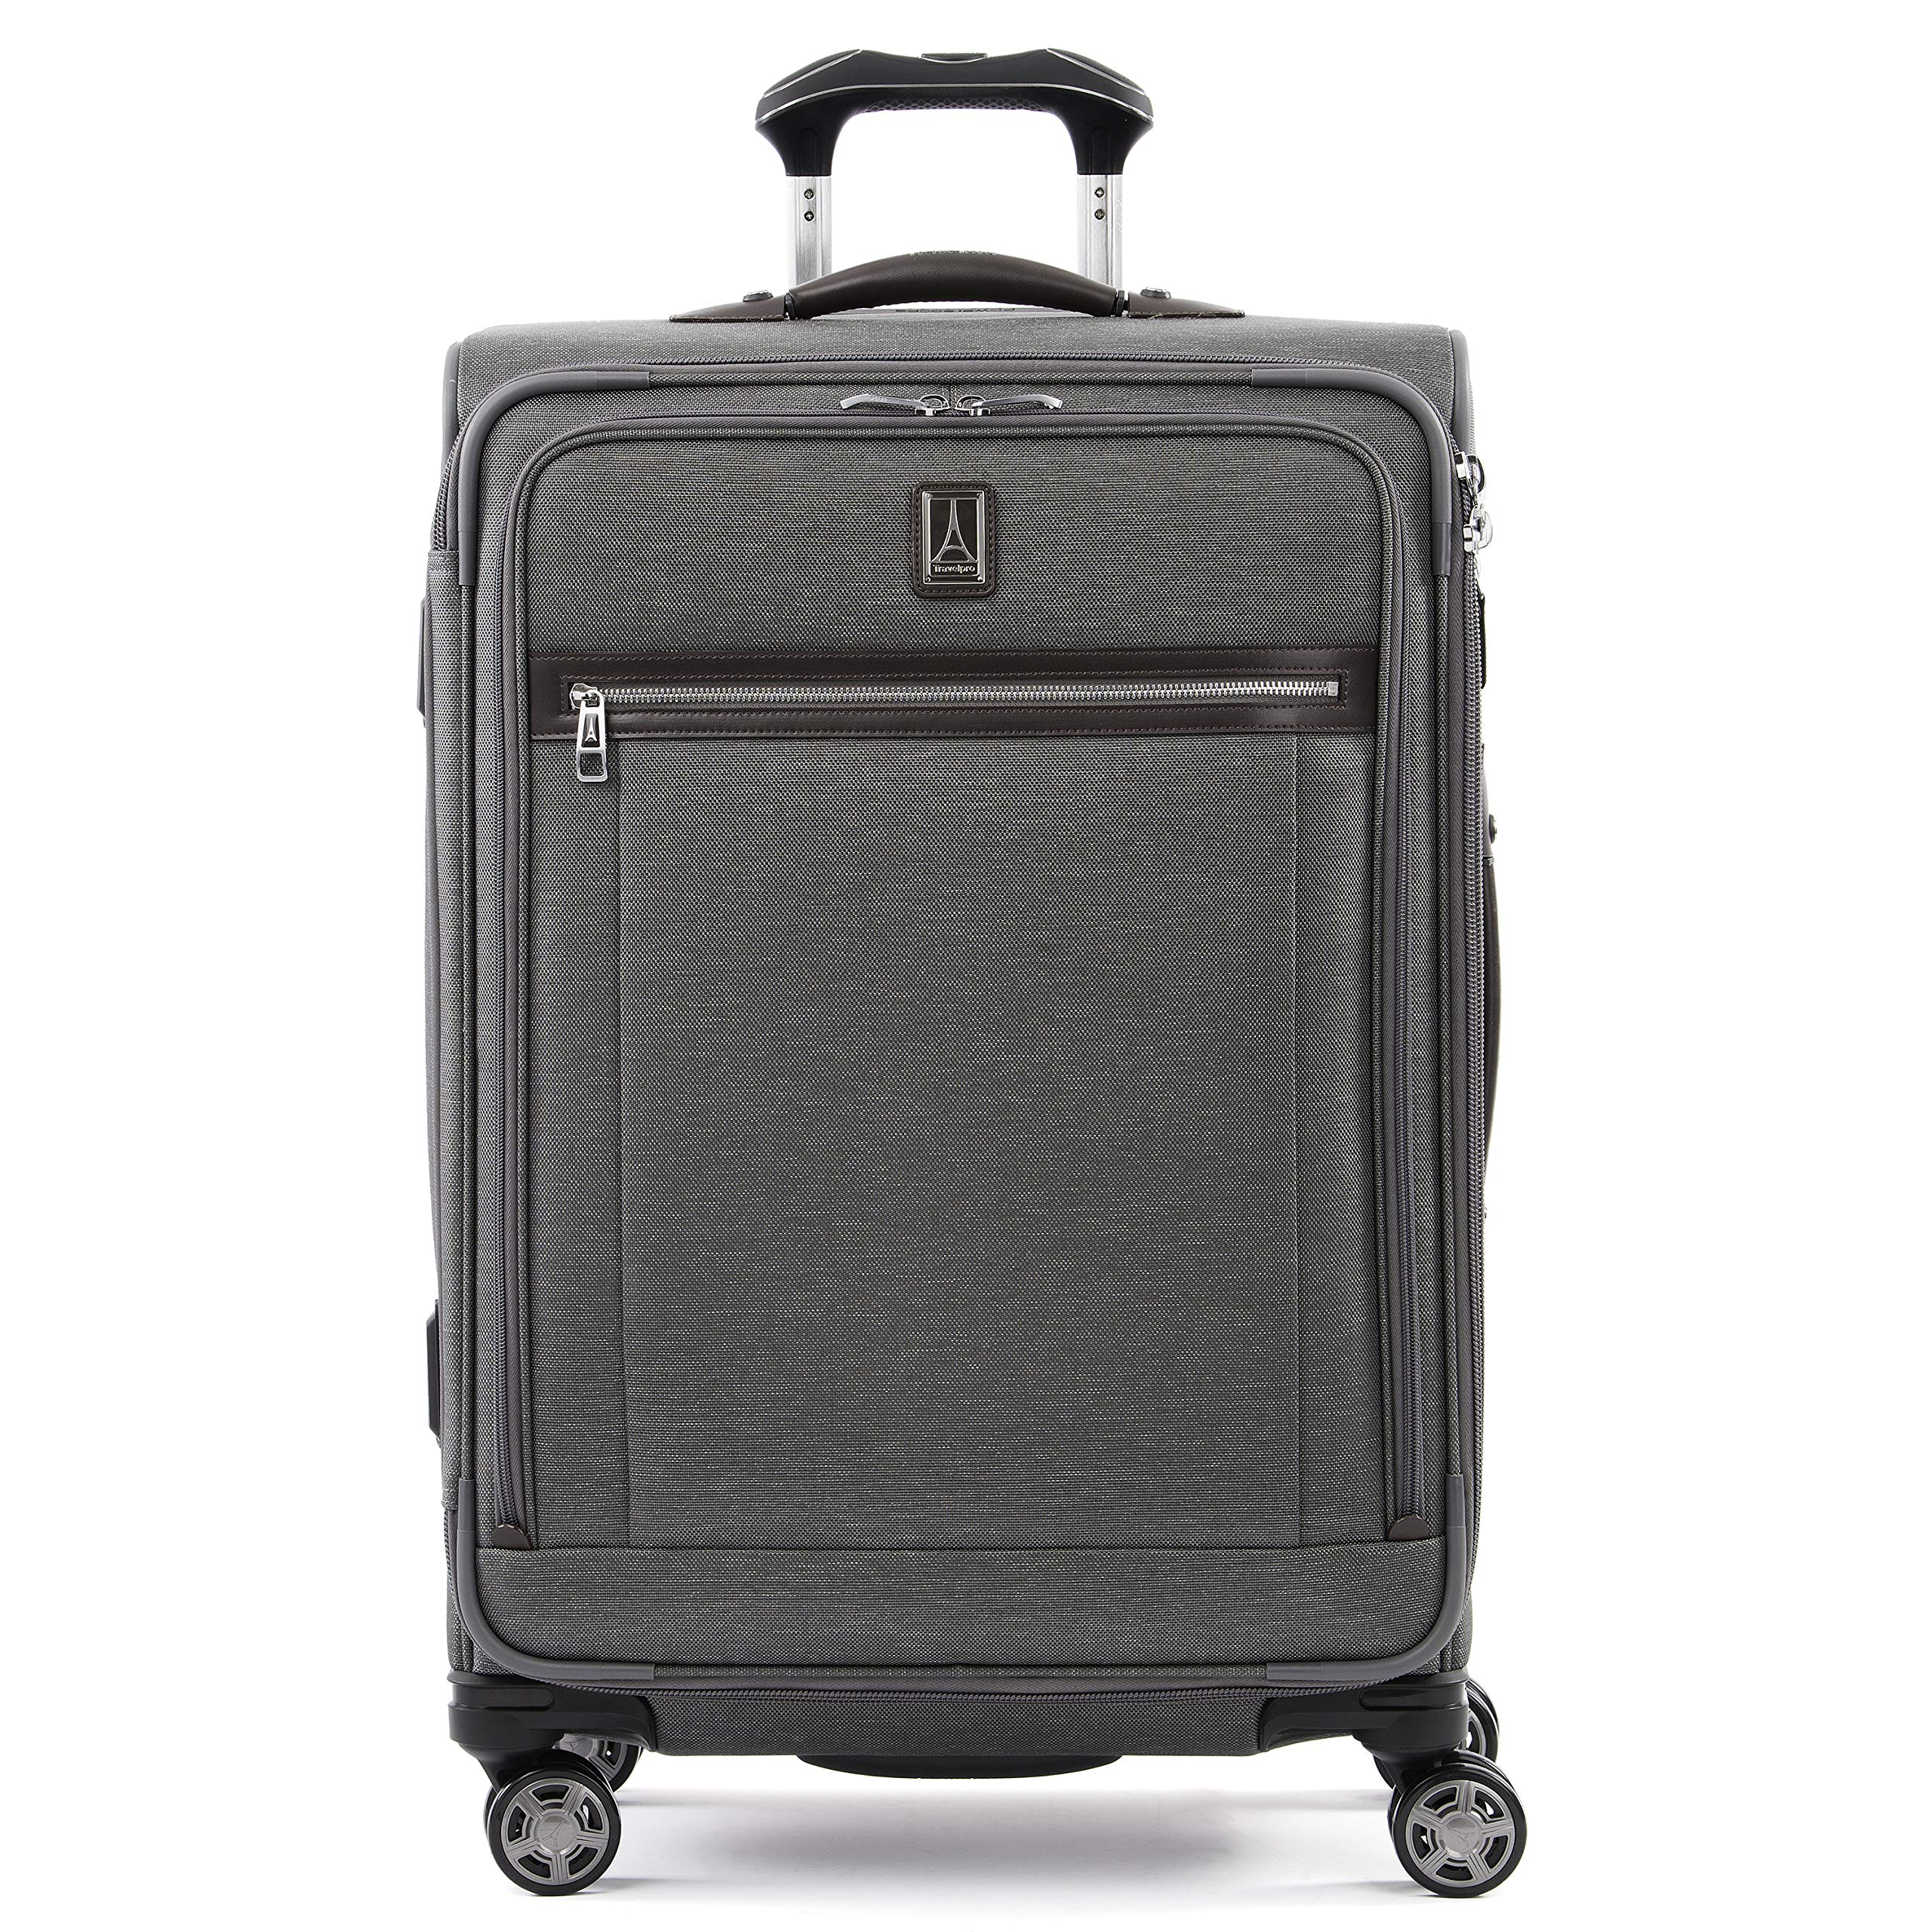 Travelpro Luggage Platinum Elite 25'' Expandable Spinner Suitcase w/Suiter, Vintage Grey